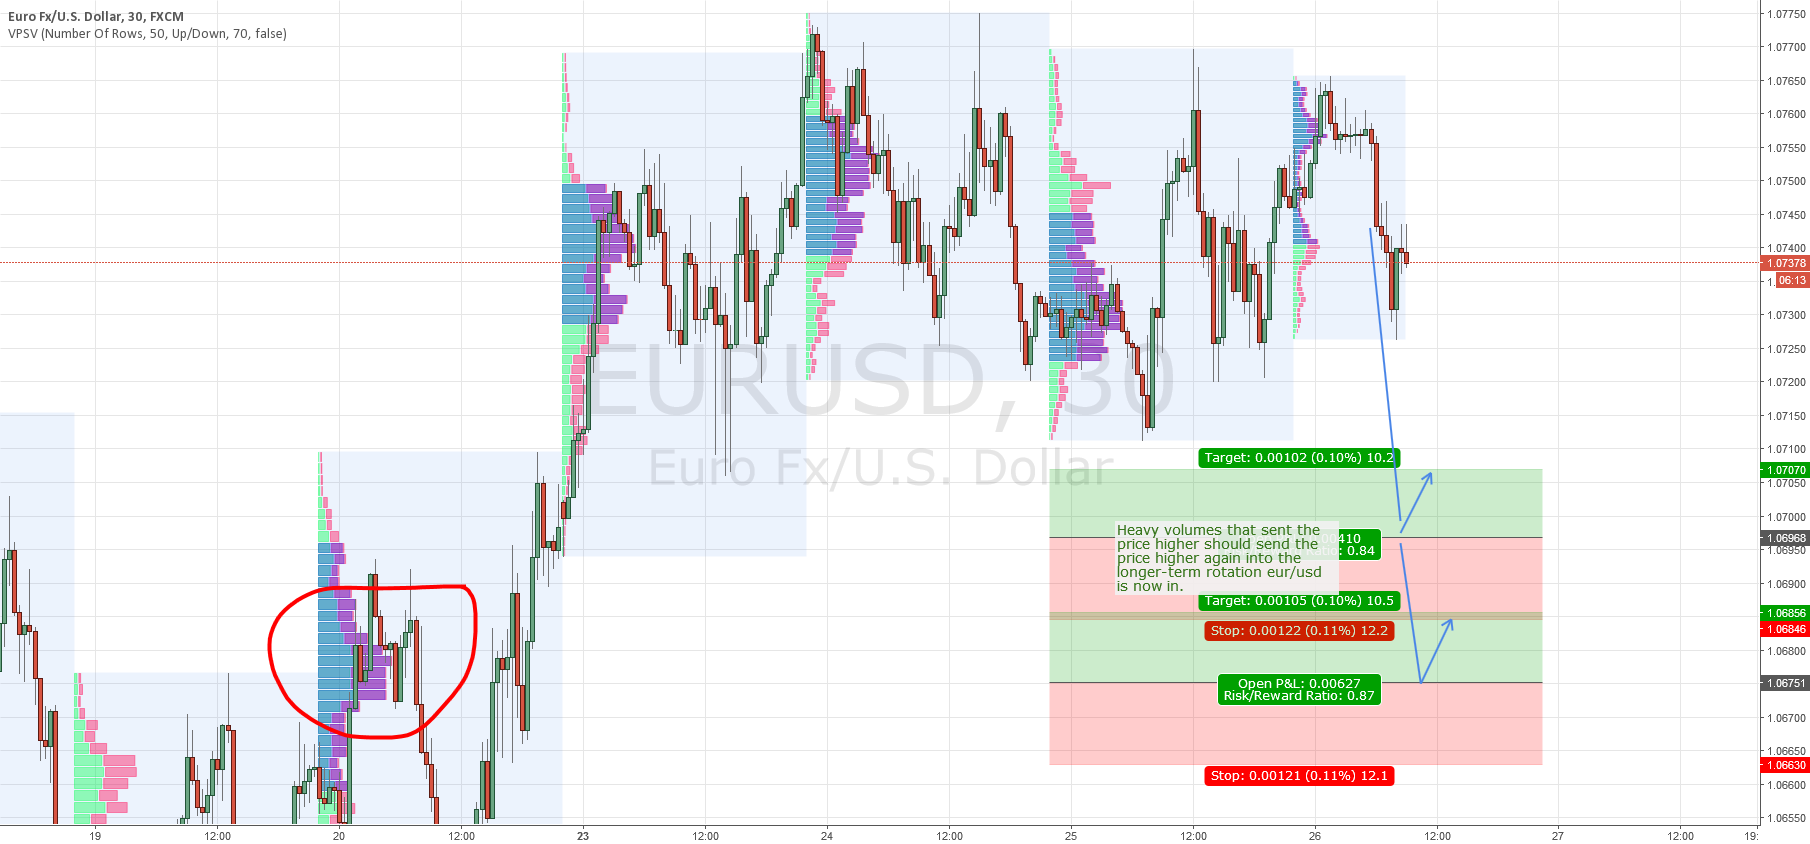 EUR/USD intraday levels for 26.1.2016